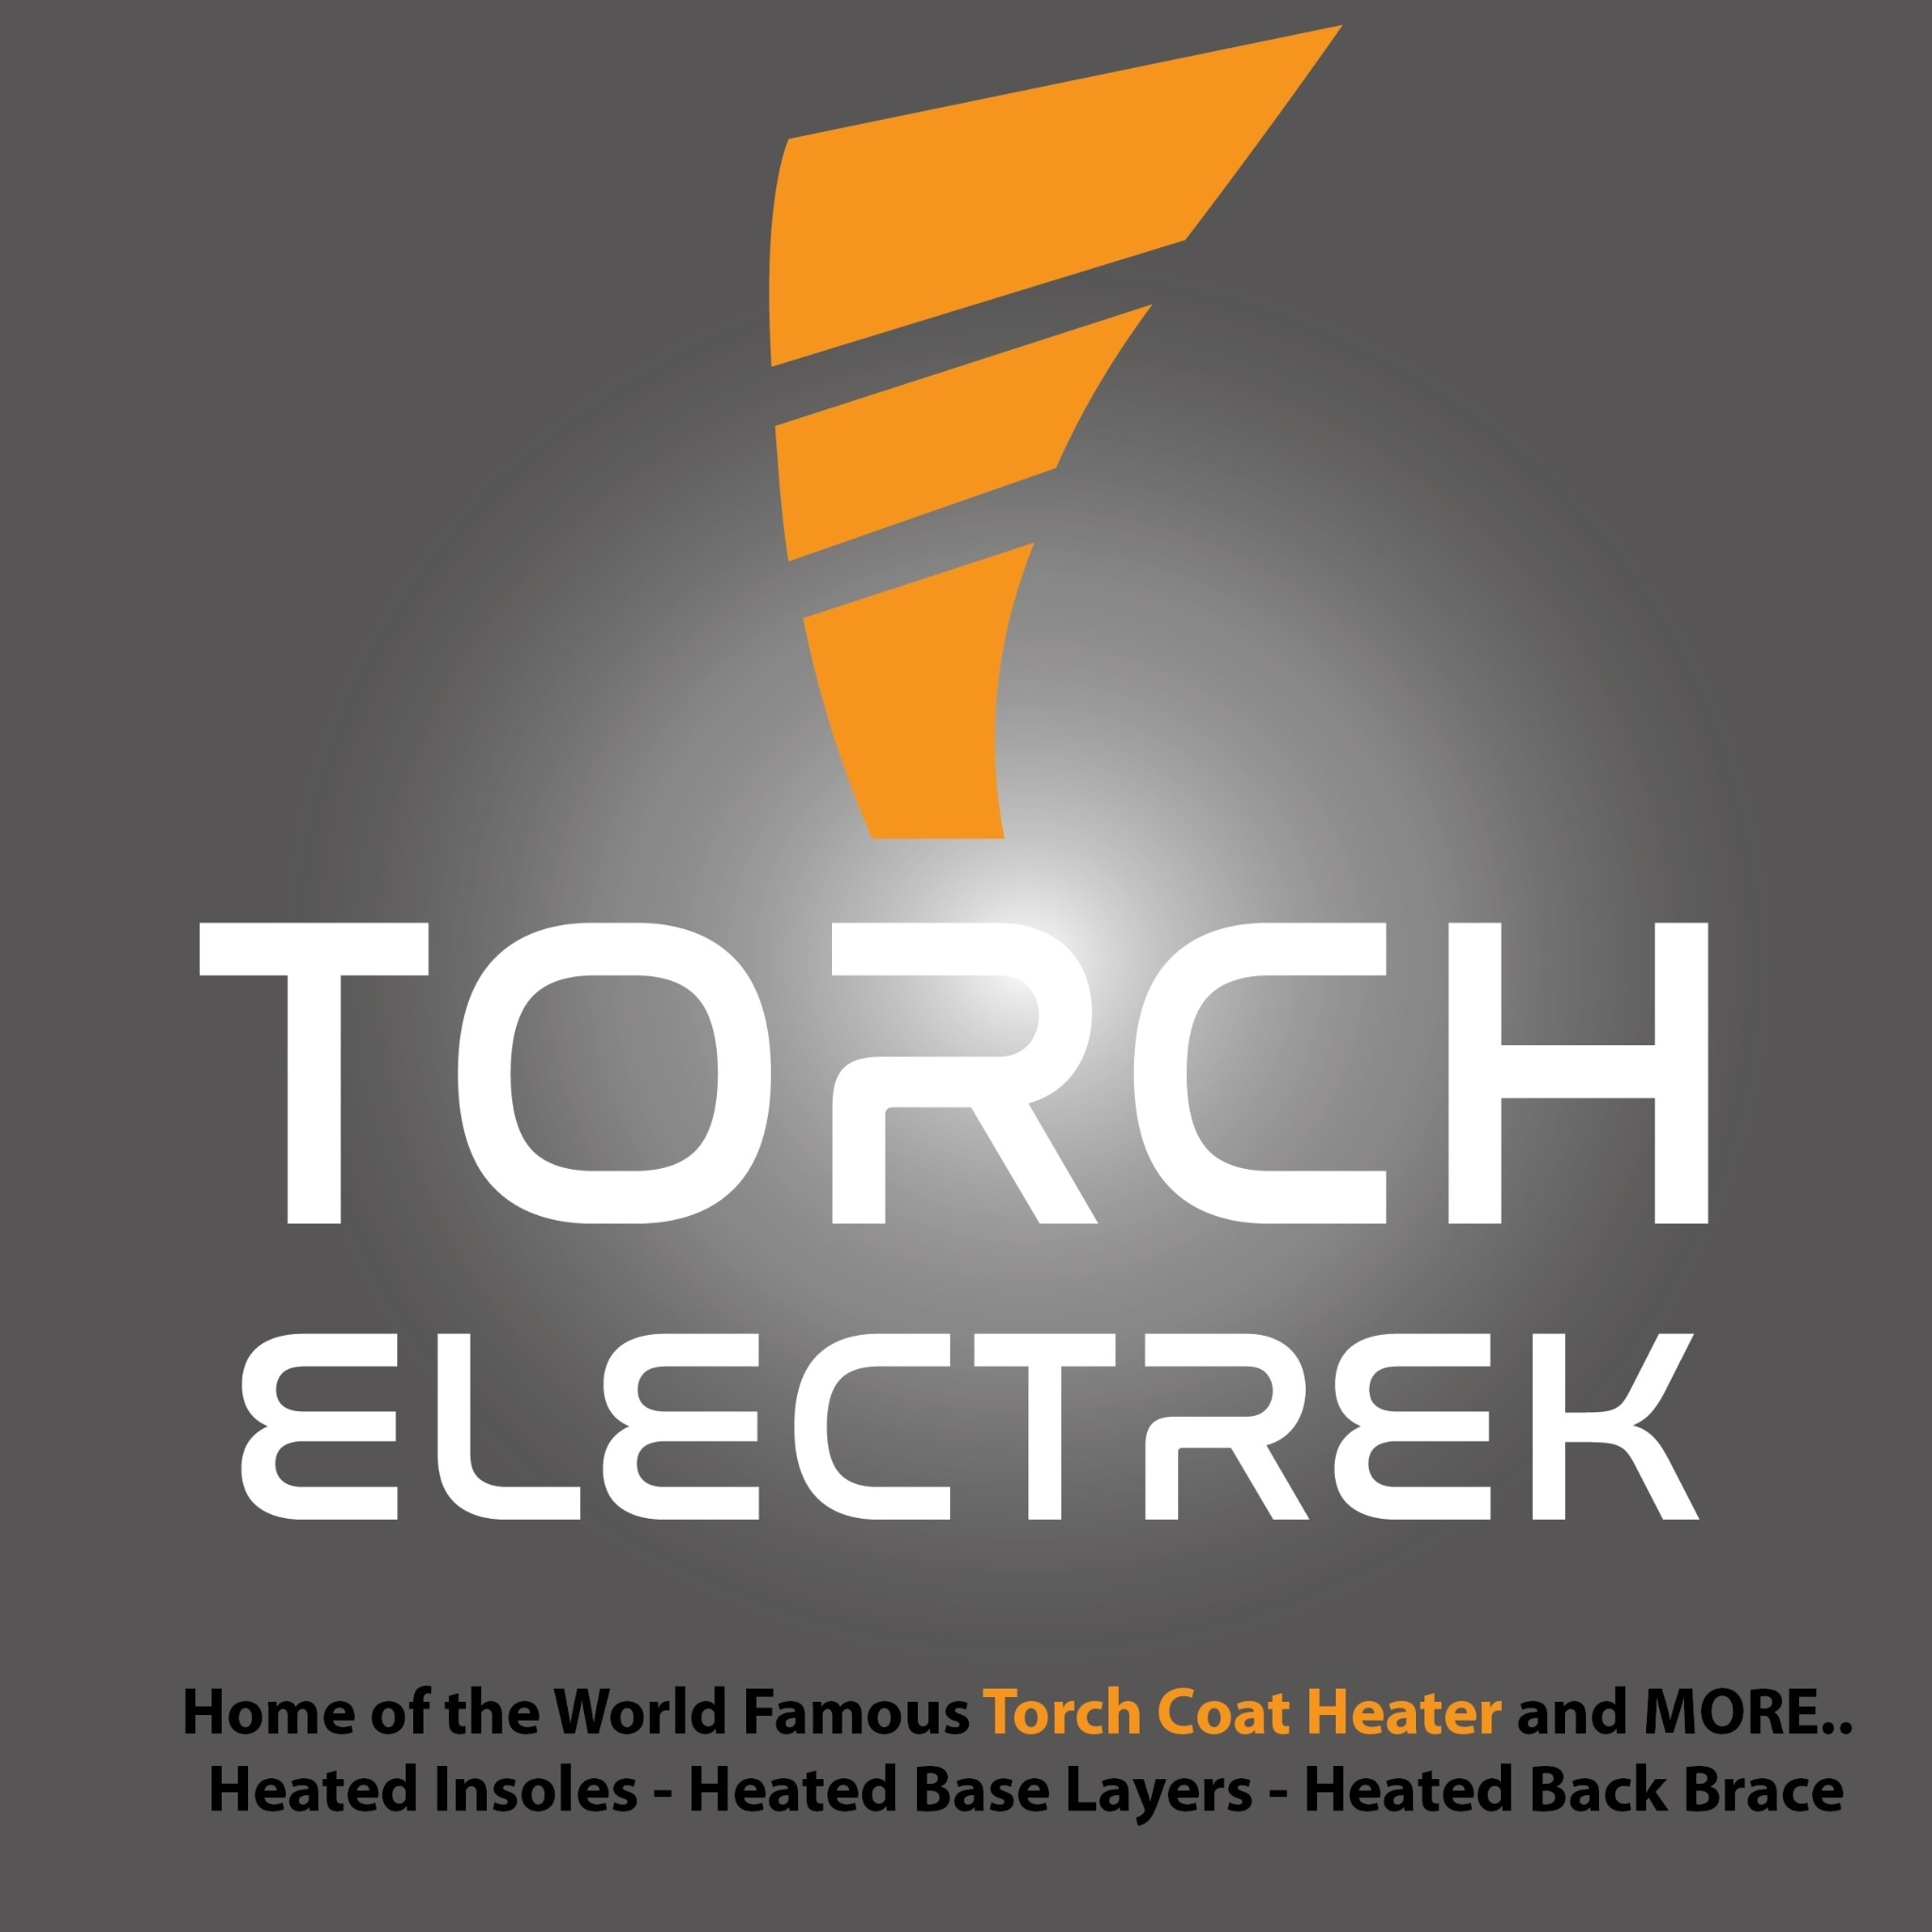 Torch Electrek